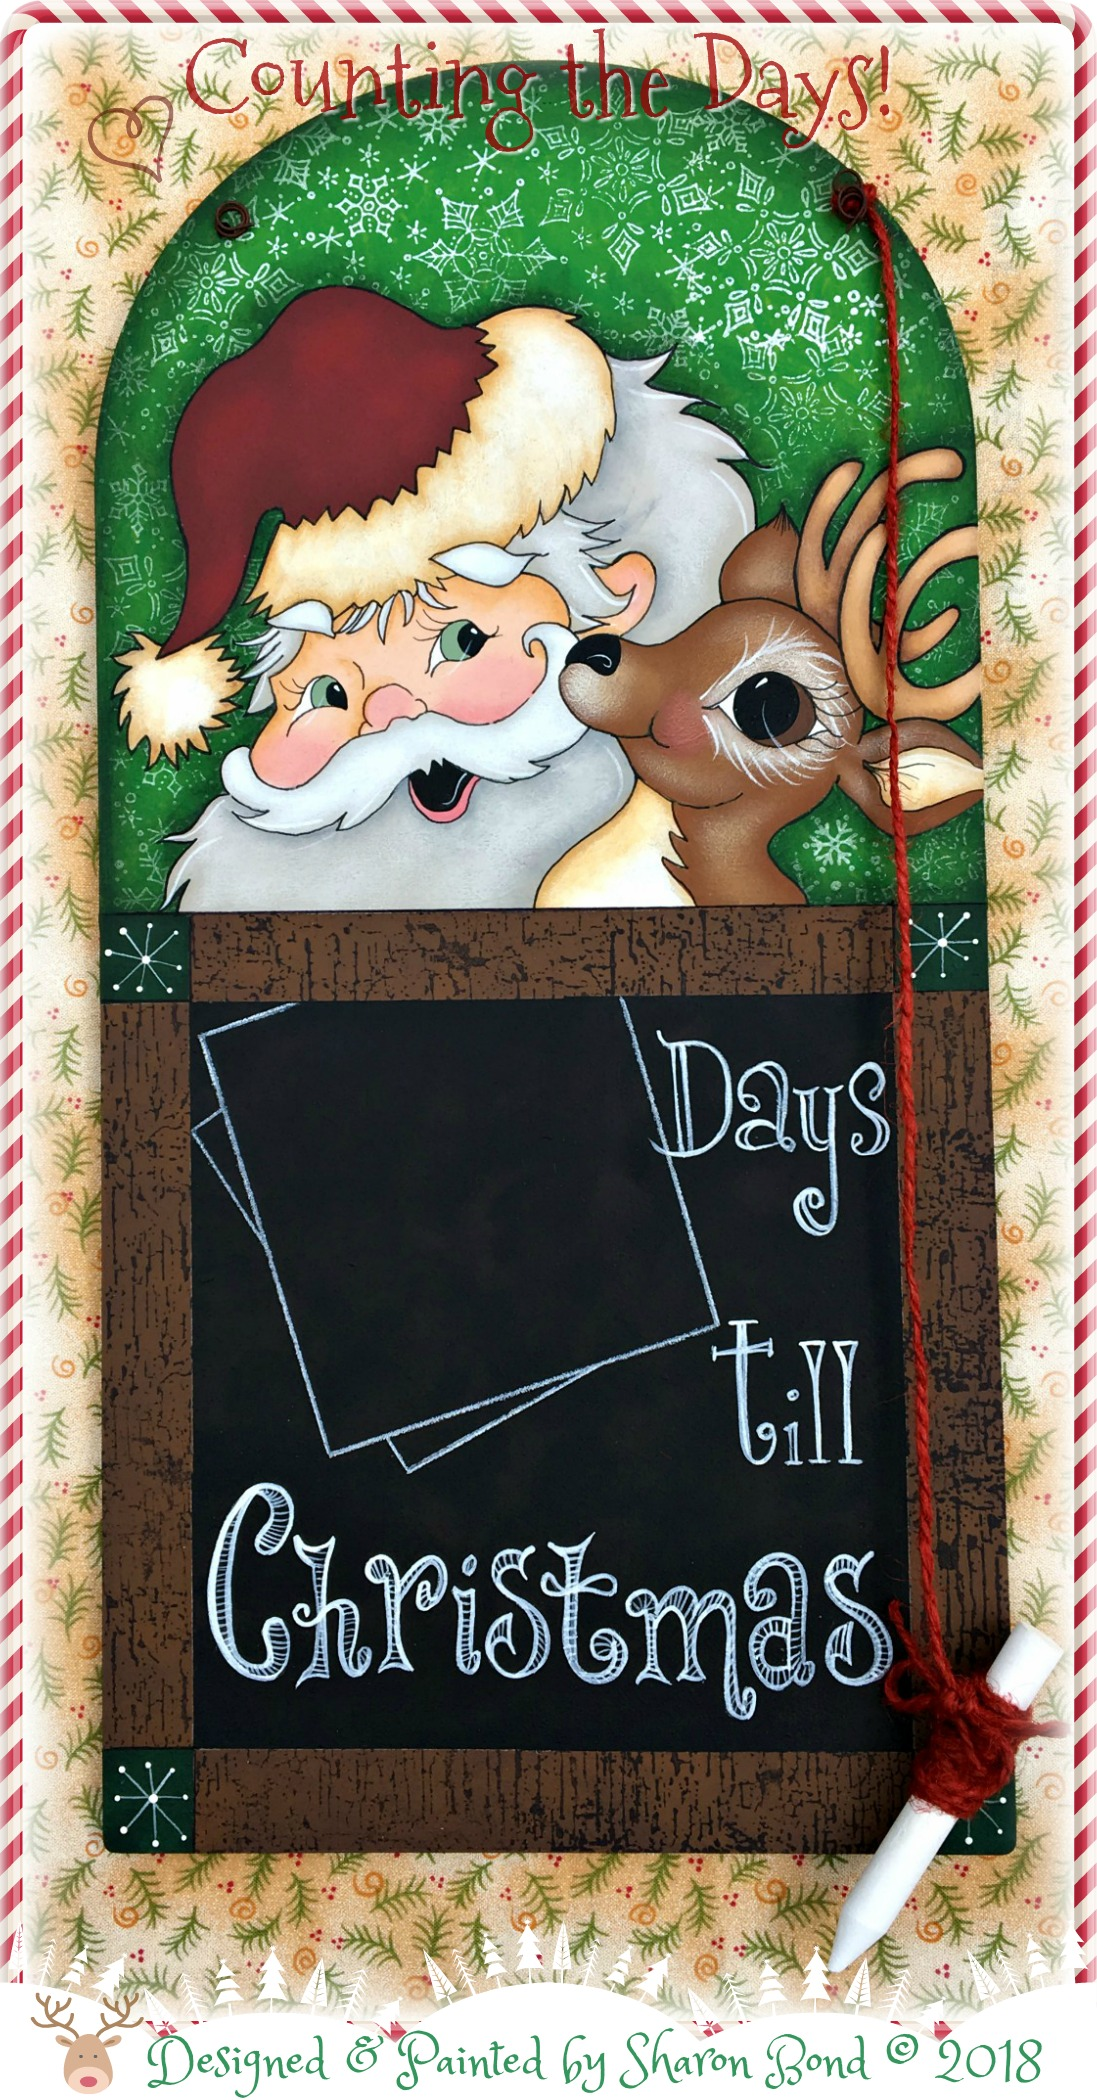 Counting the Days! - E-Packet - Sharon Bond